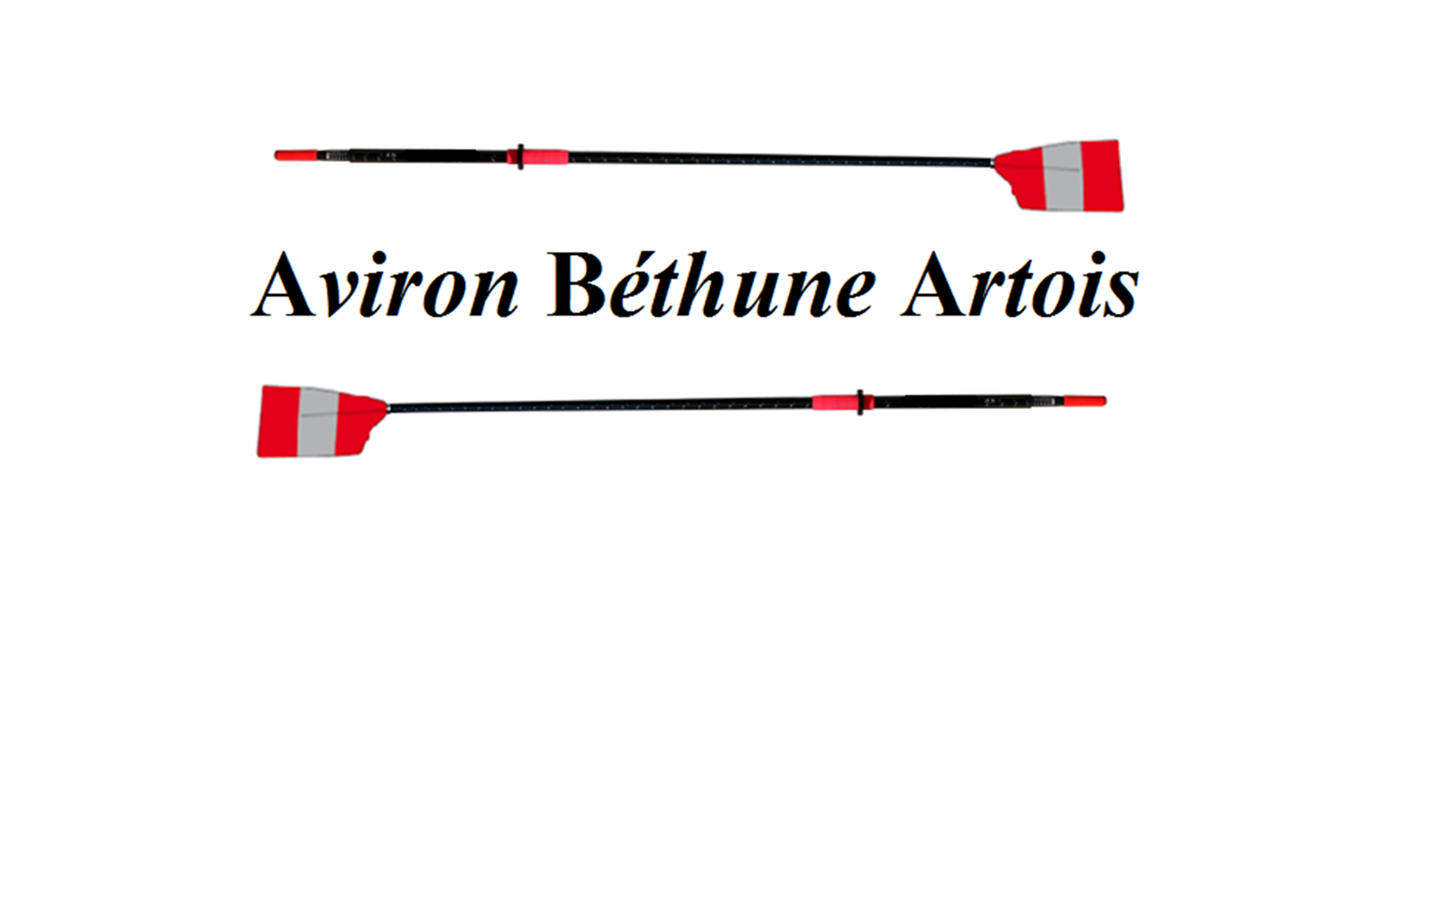 Association - Aviron Béthune Artois / ABA